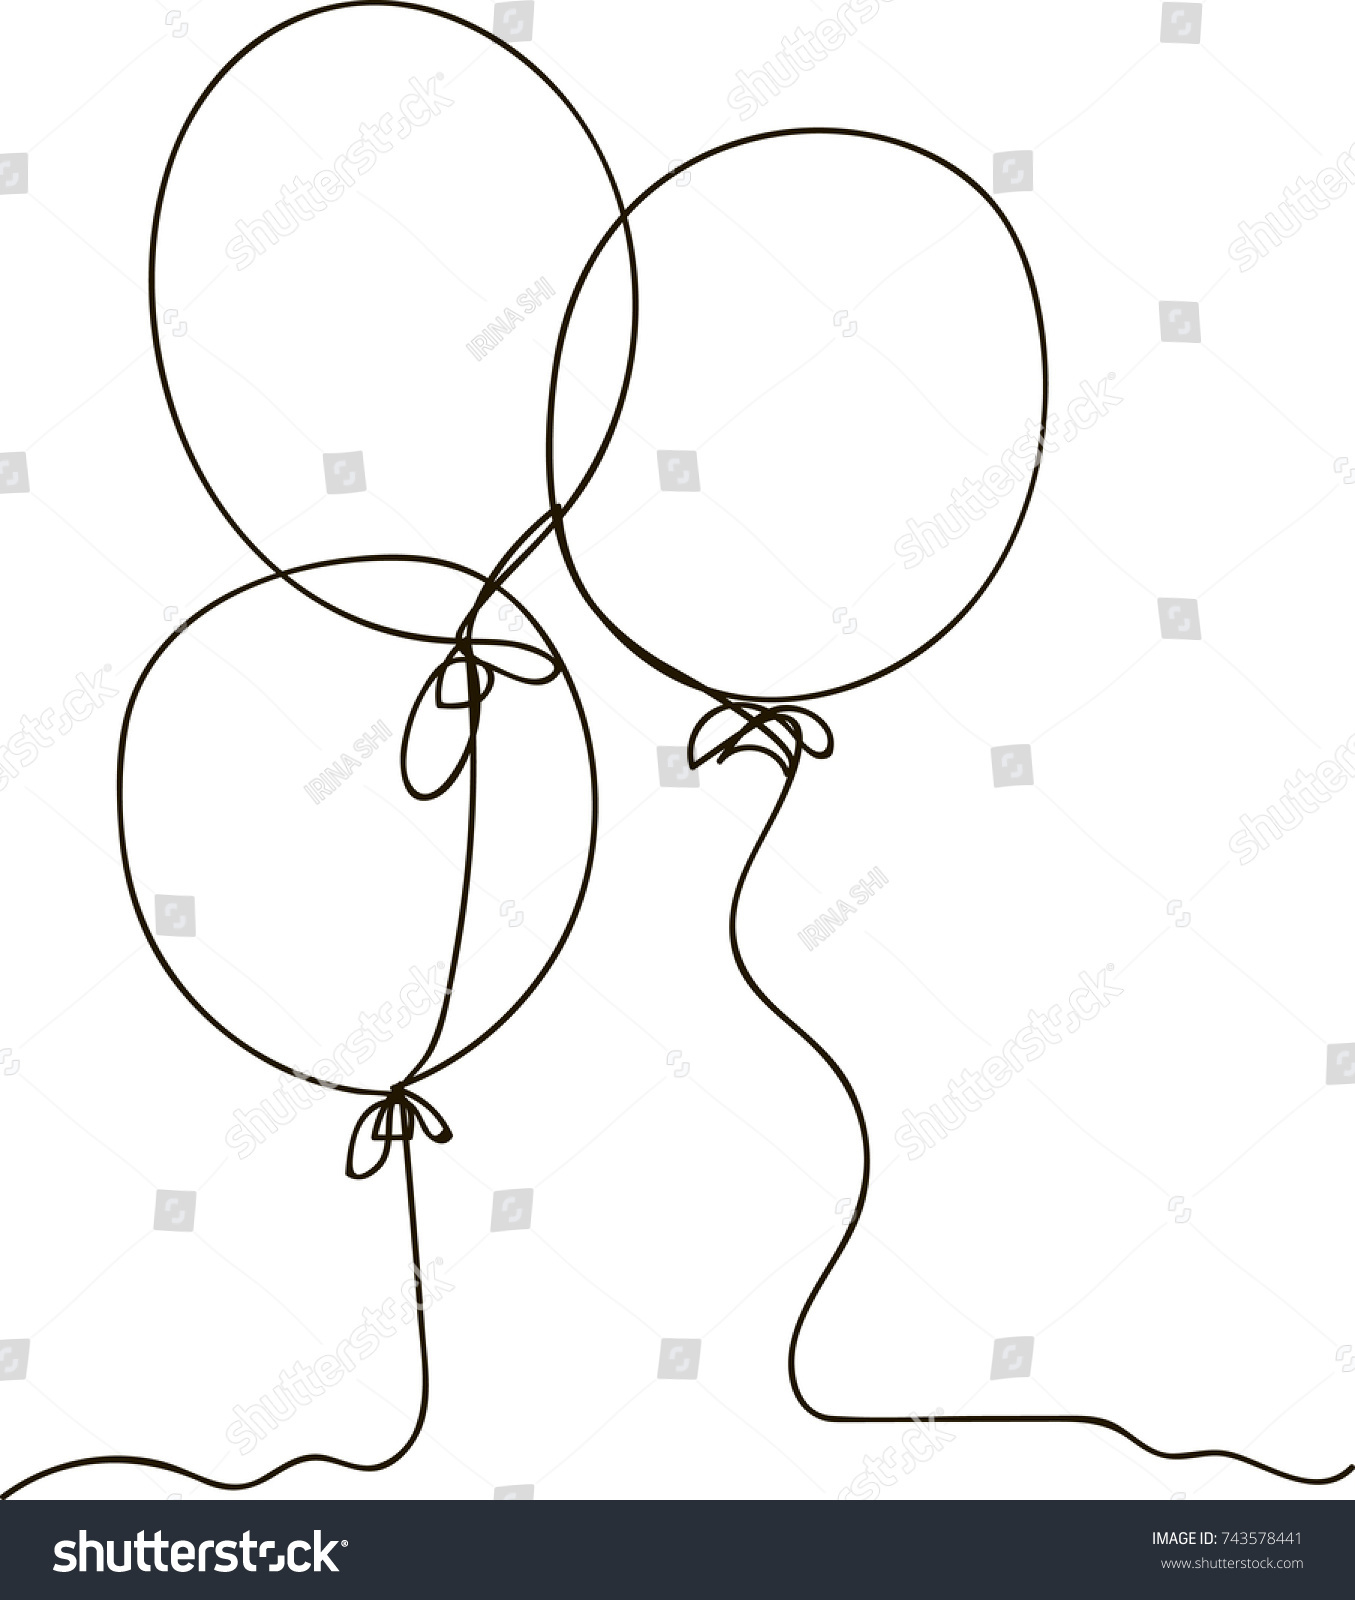 hight resolution of one line drawing of isolated vector object air balloon